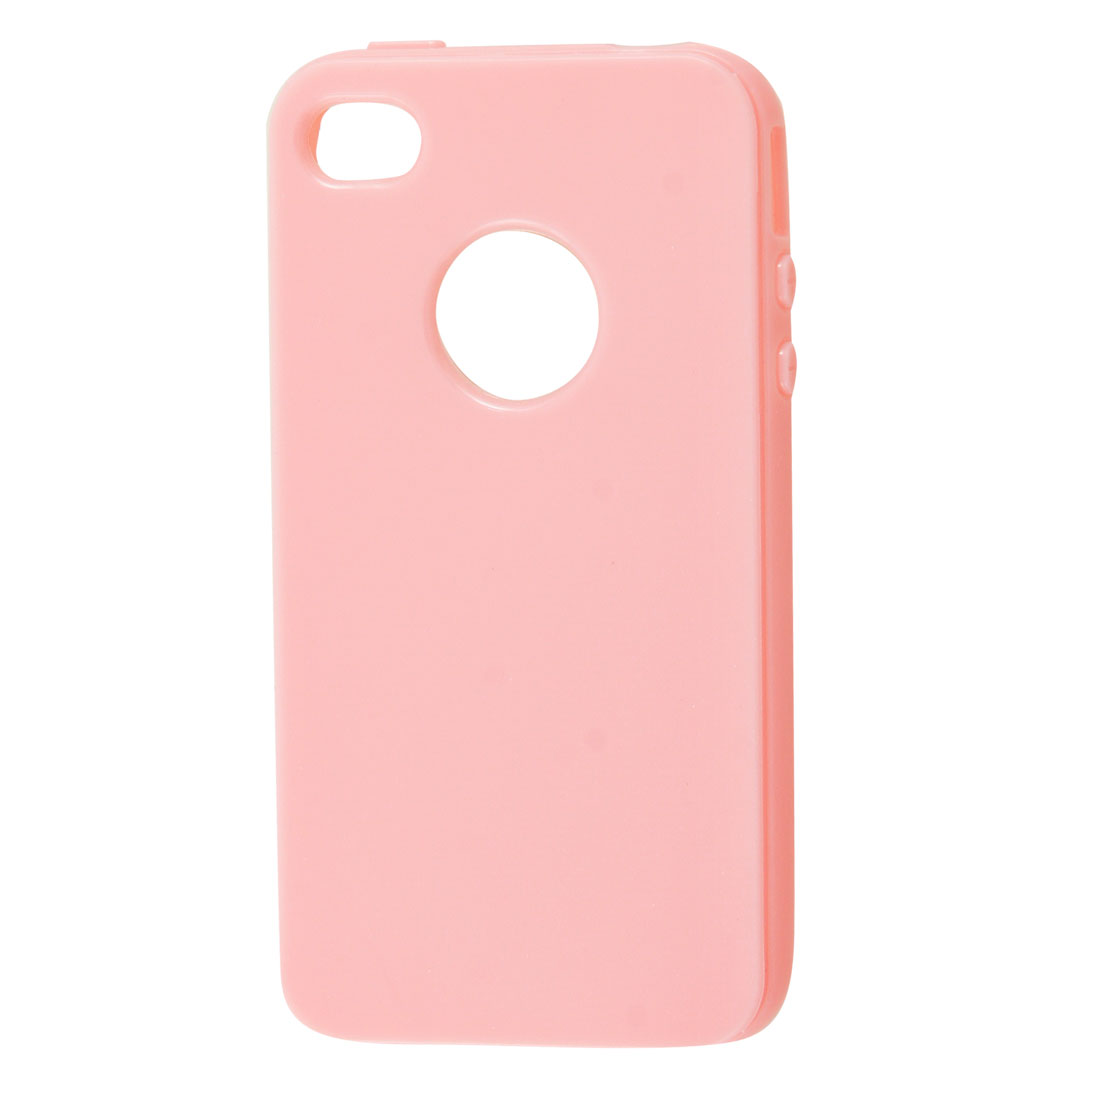 Pink Soft Plastic Case Shell for Apple iPhone 4 4G 4GS 4S